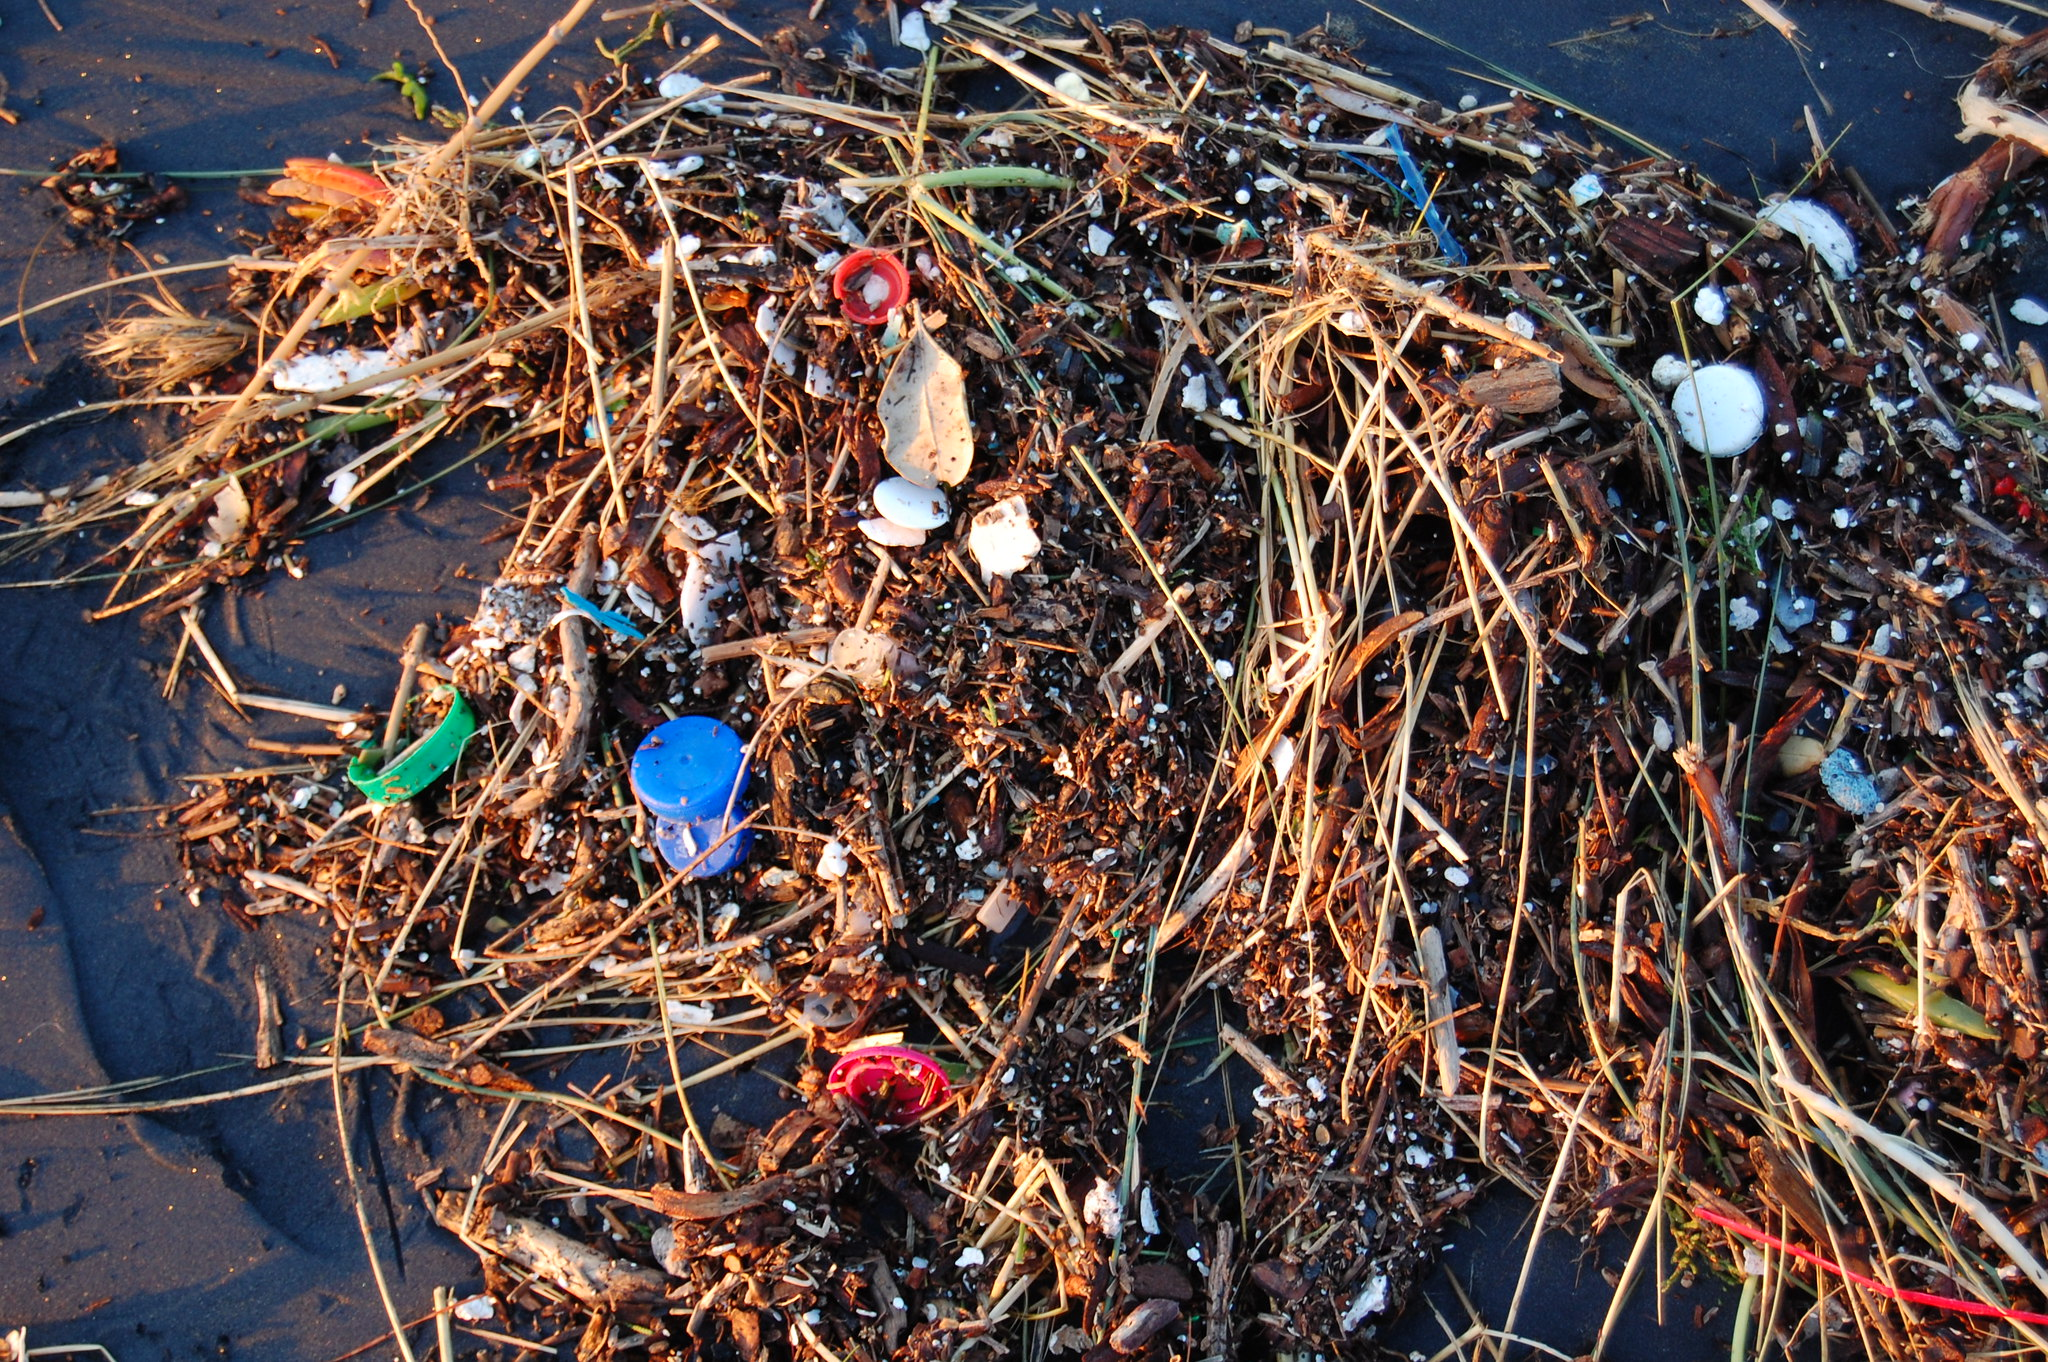 Plastic debris is washed up on a beach.